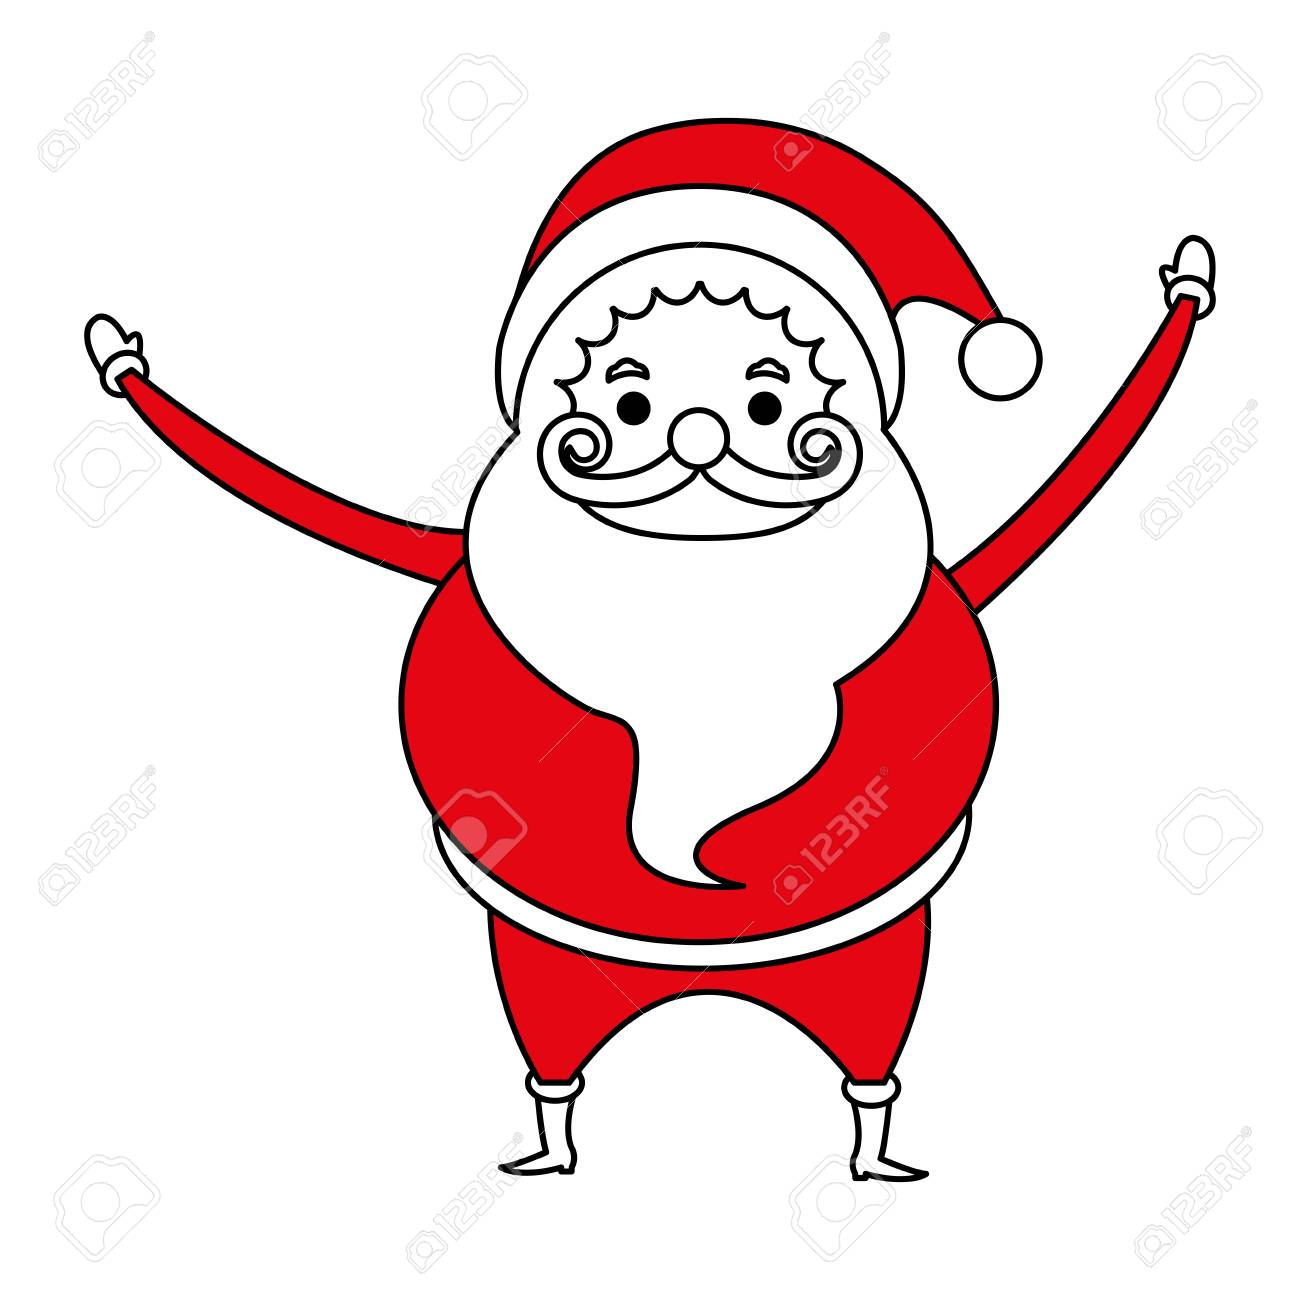 color silhouette image cartoon full body fat santa claus vector illustration stock vector 78427625 - Pictures Of Santa Claus To Color